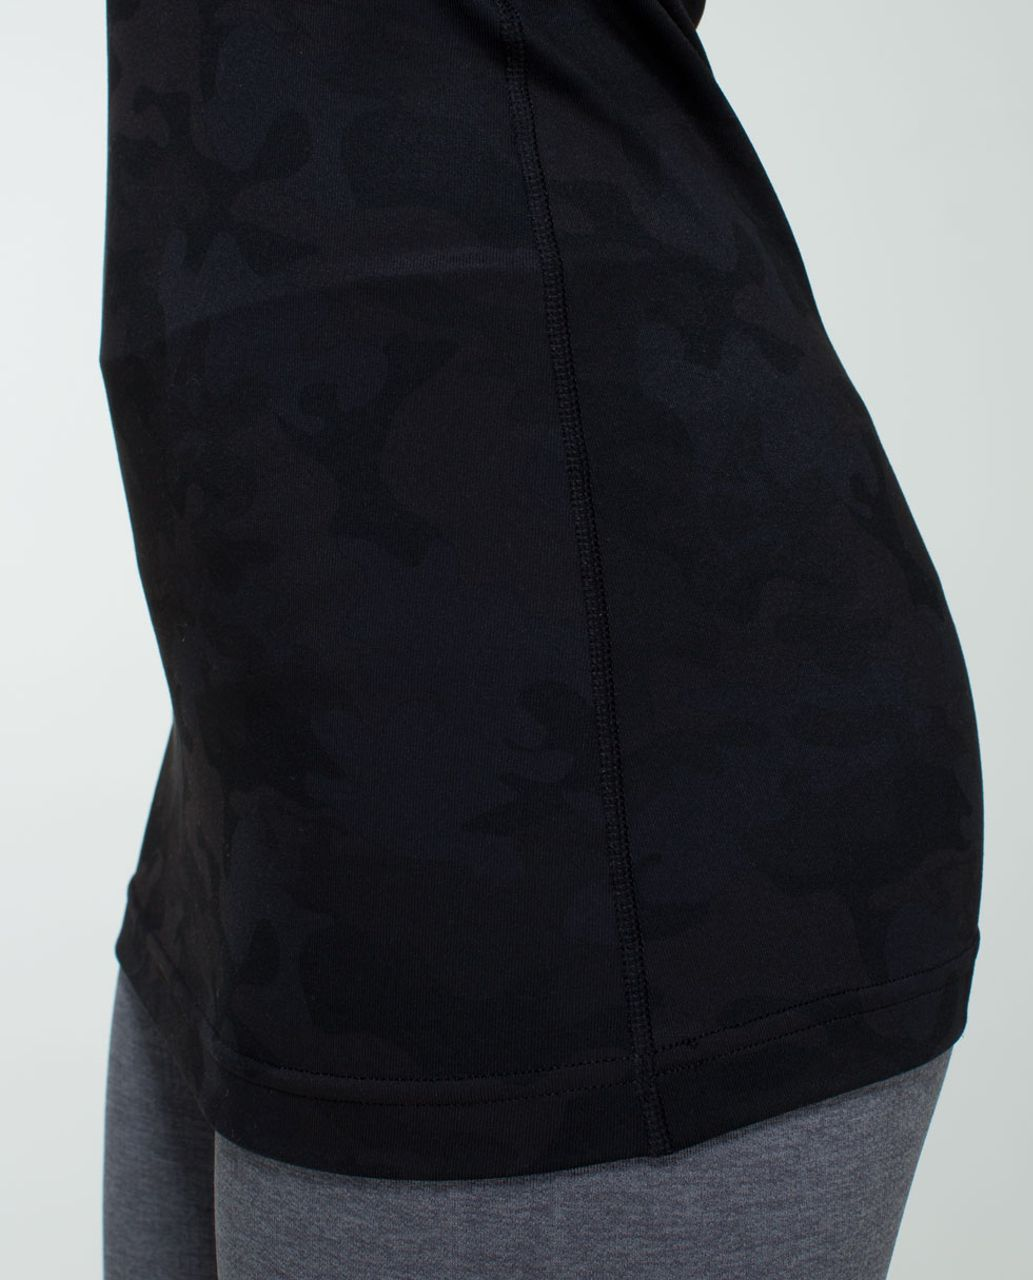 Lululemon Cool Racerback - Savasana Camo 20cm New Black